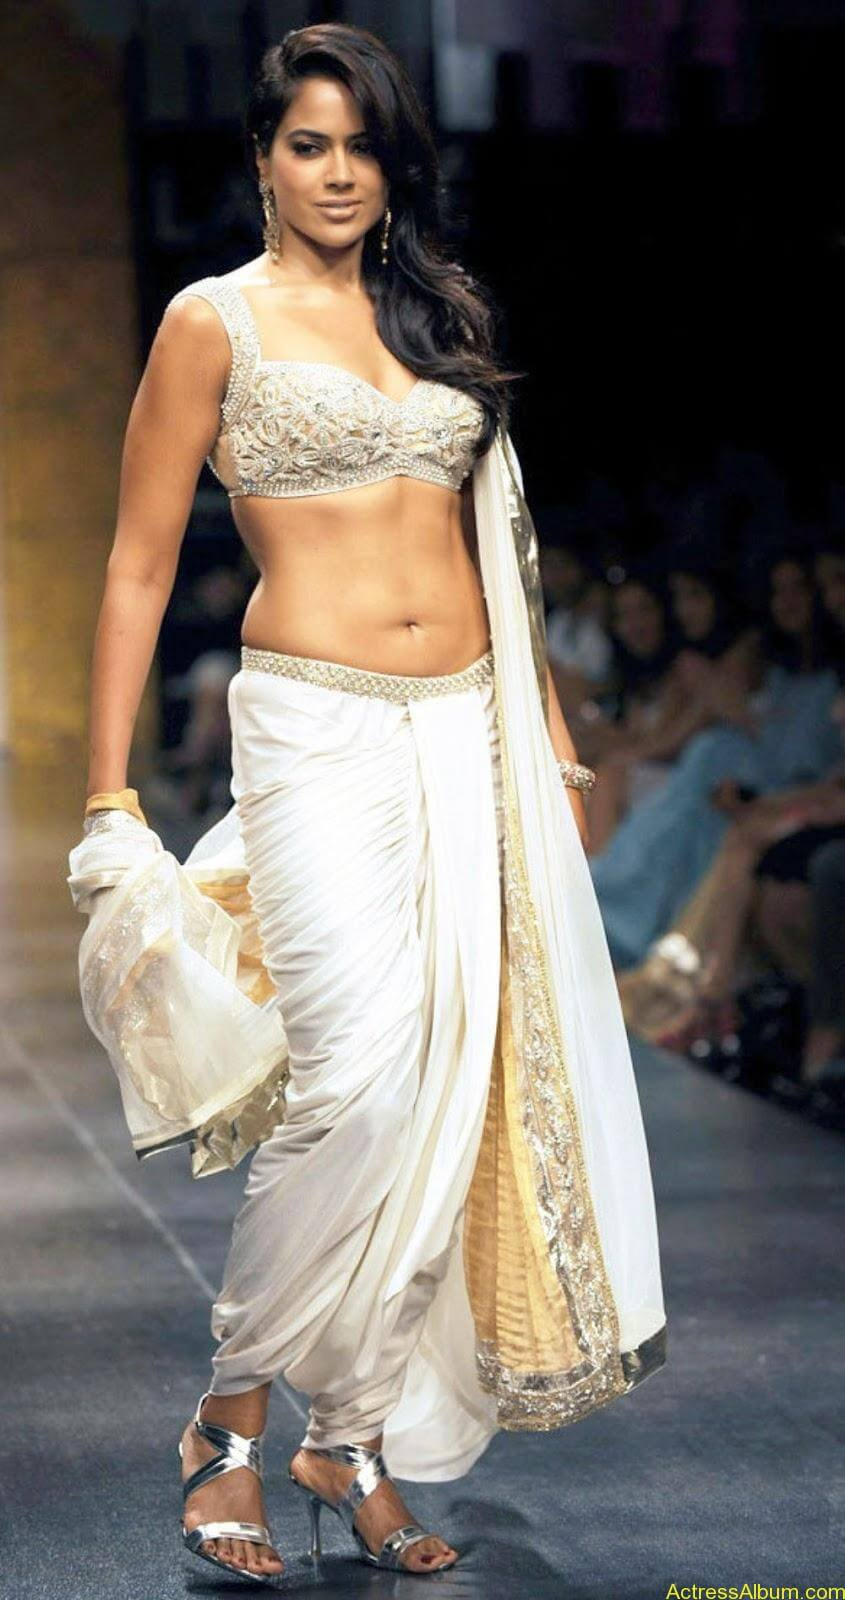 SAMEERA REDDY HOT NAVEL PHOTOS ON RAMP2